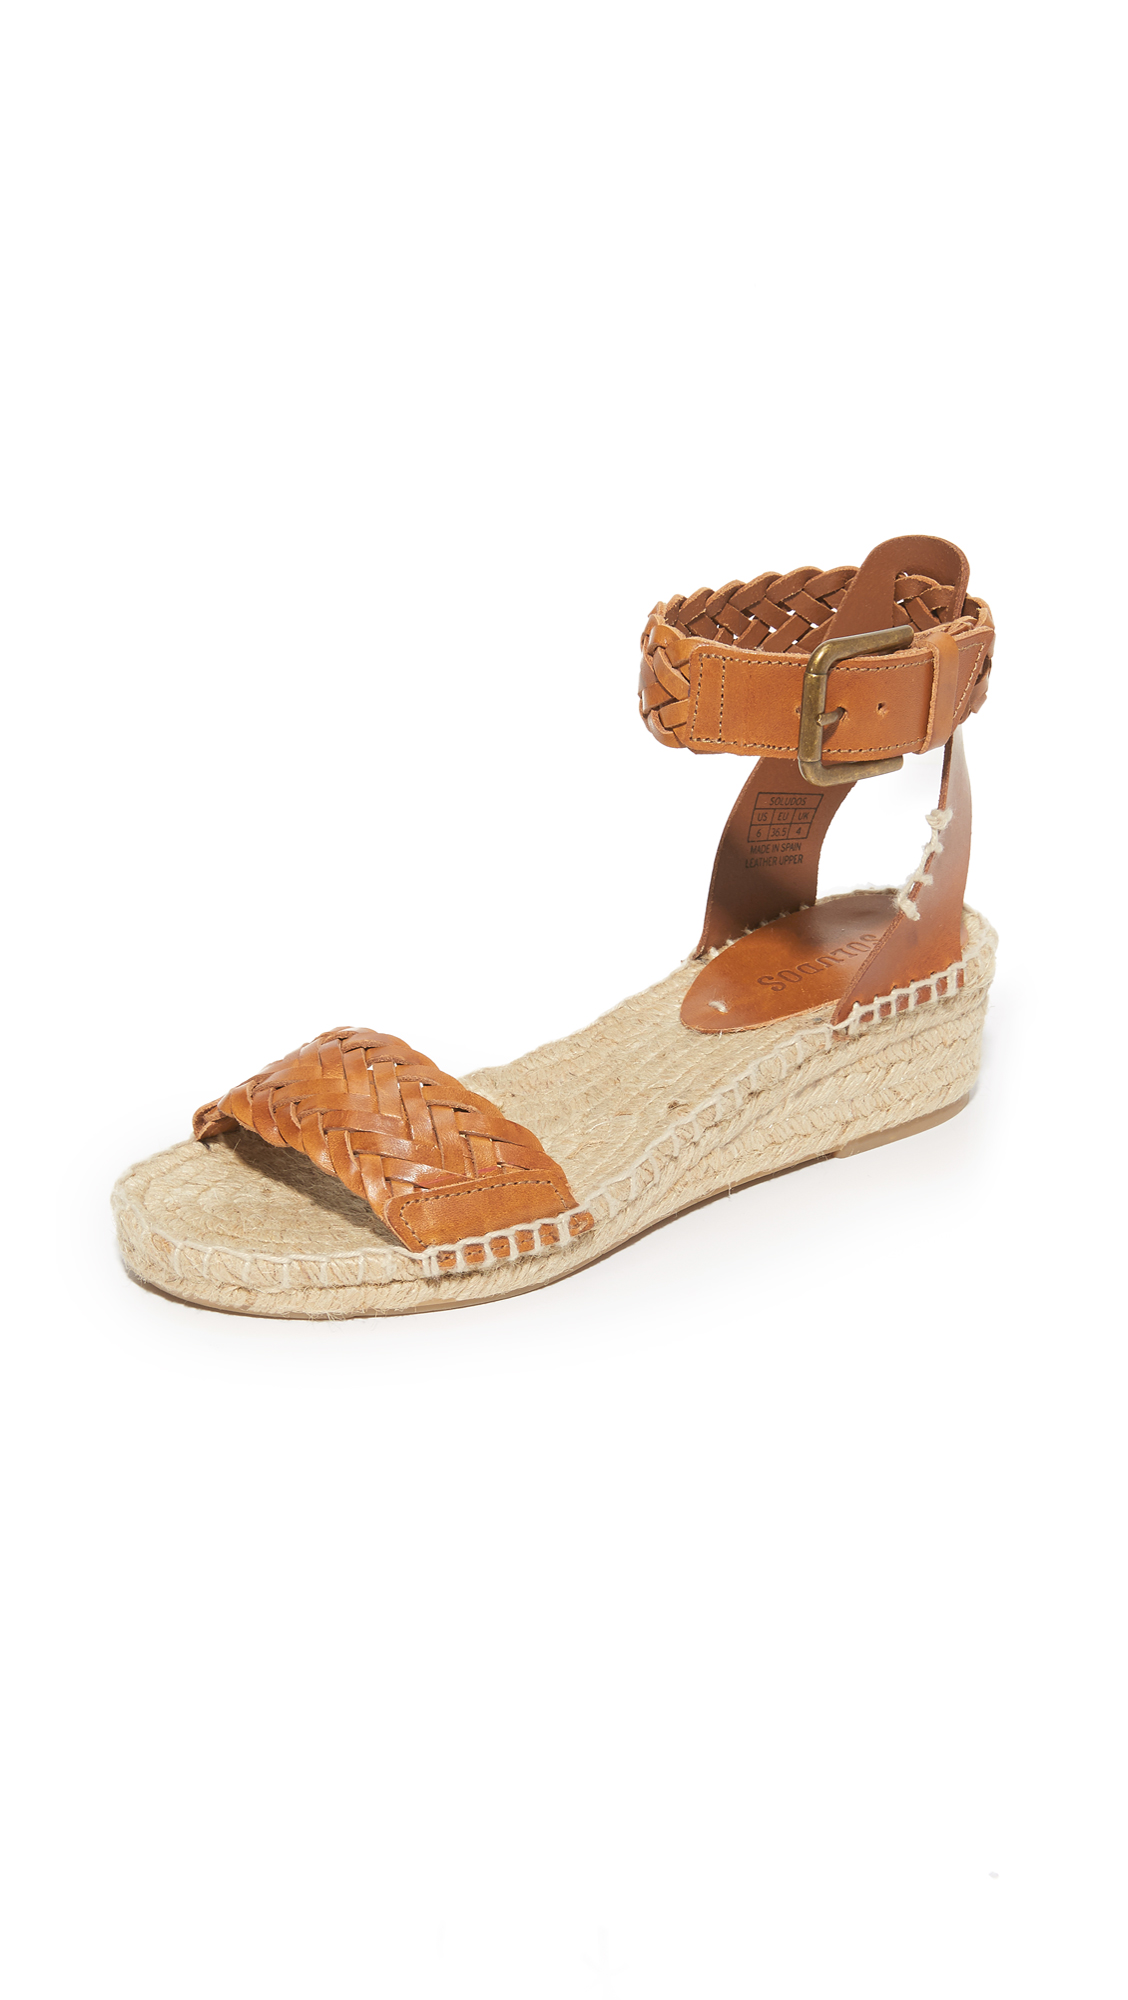 Soludos Woven Leather Demi Wedges - Camel